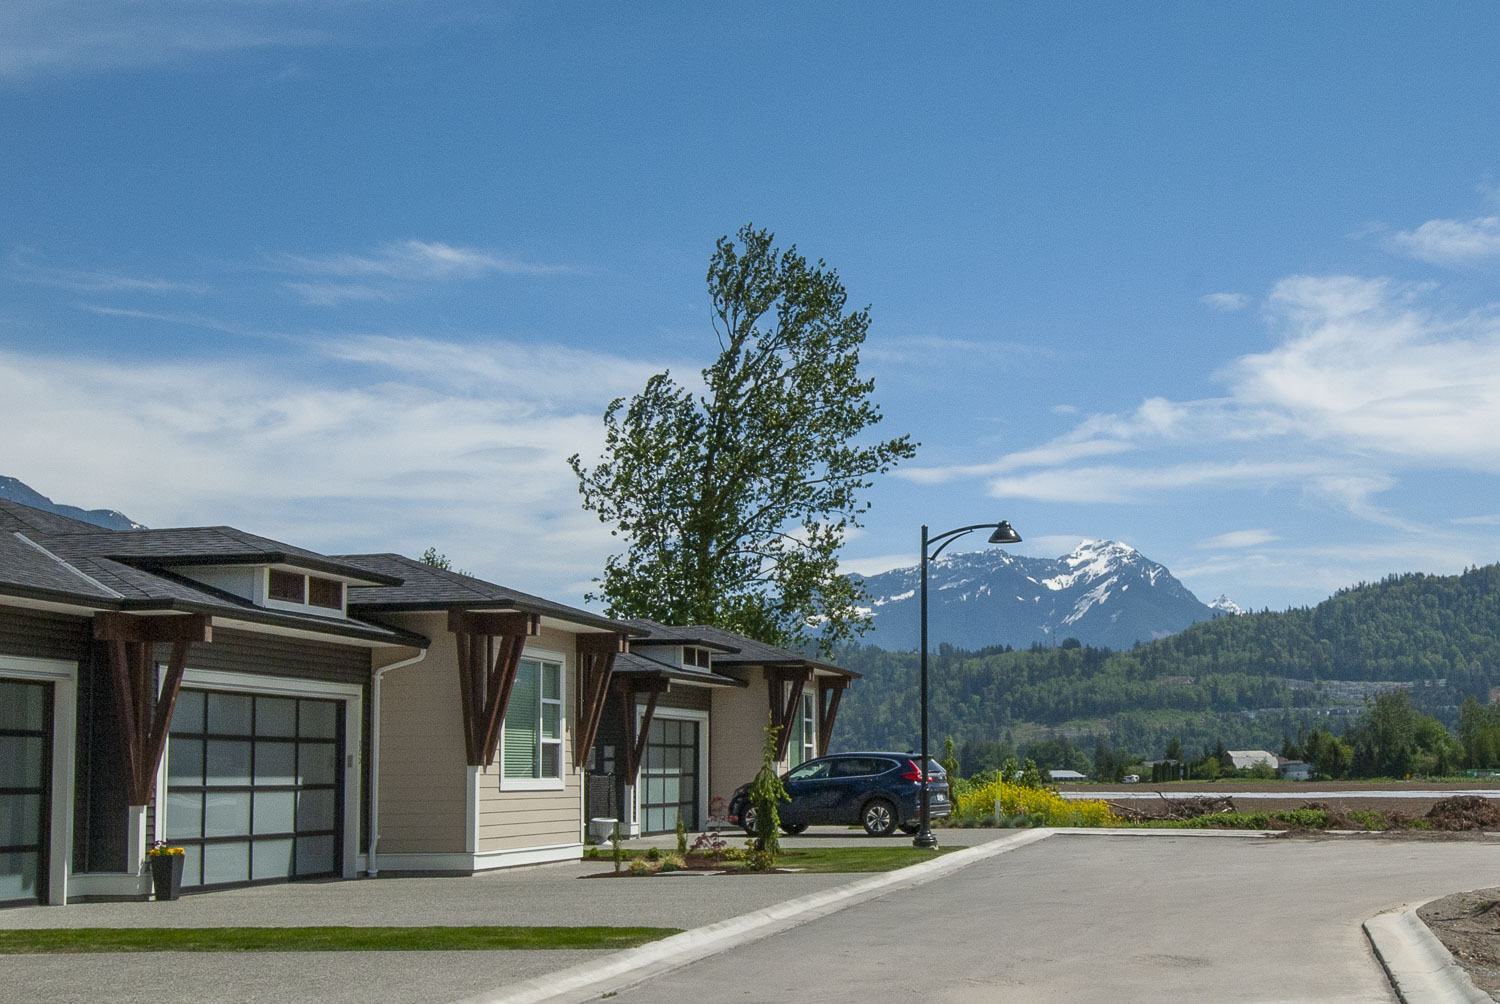 Rendering Of Elysian Village Homes & Mountain View